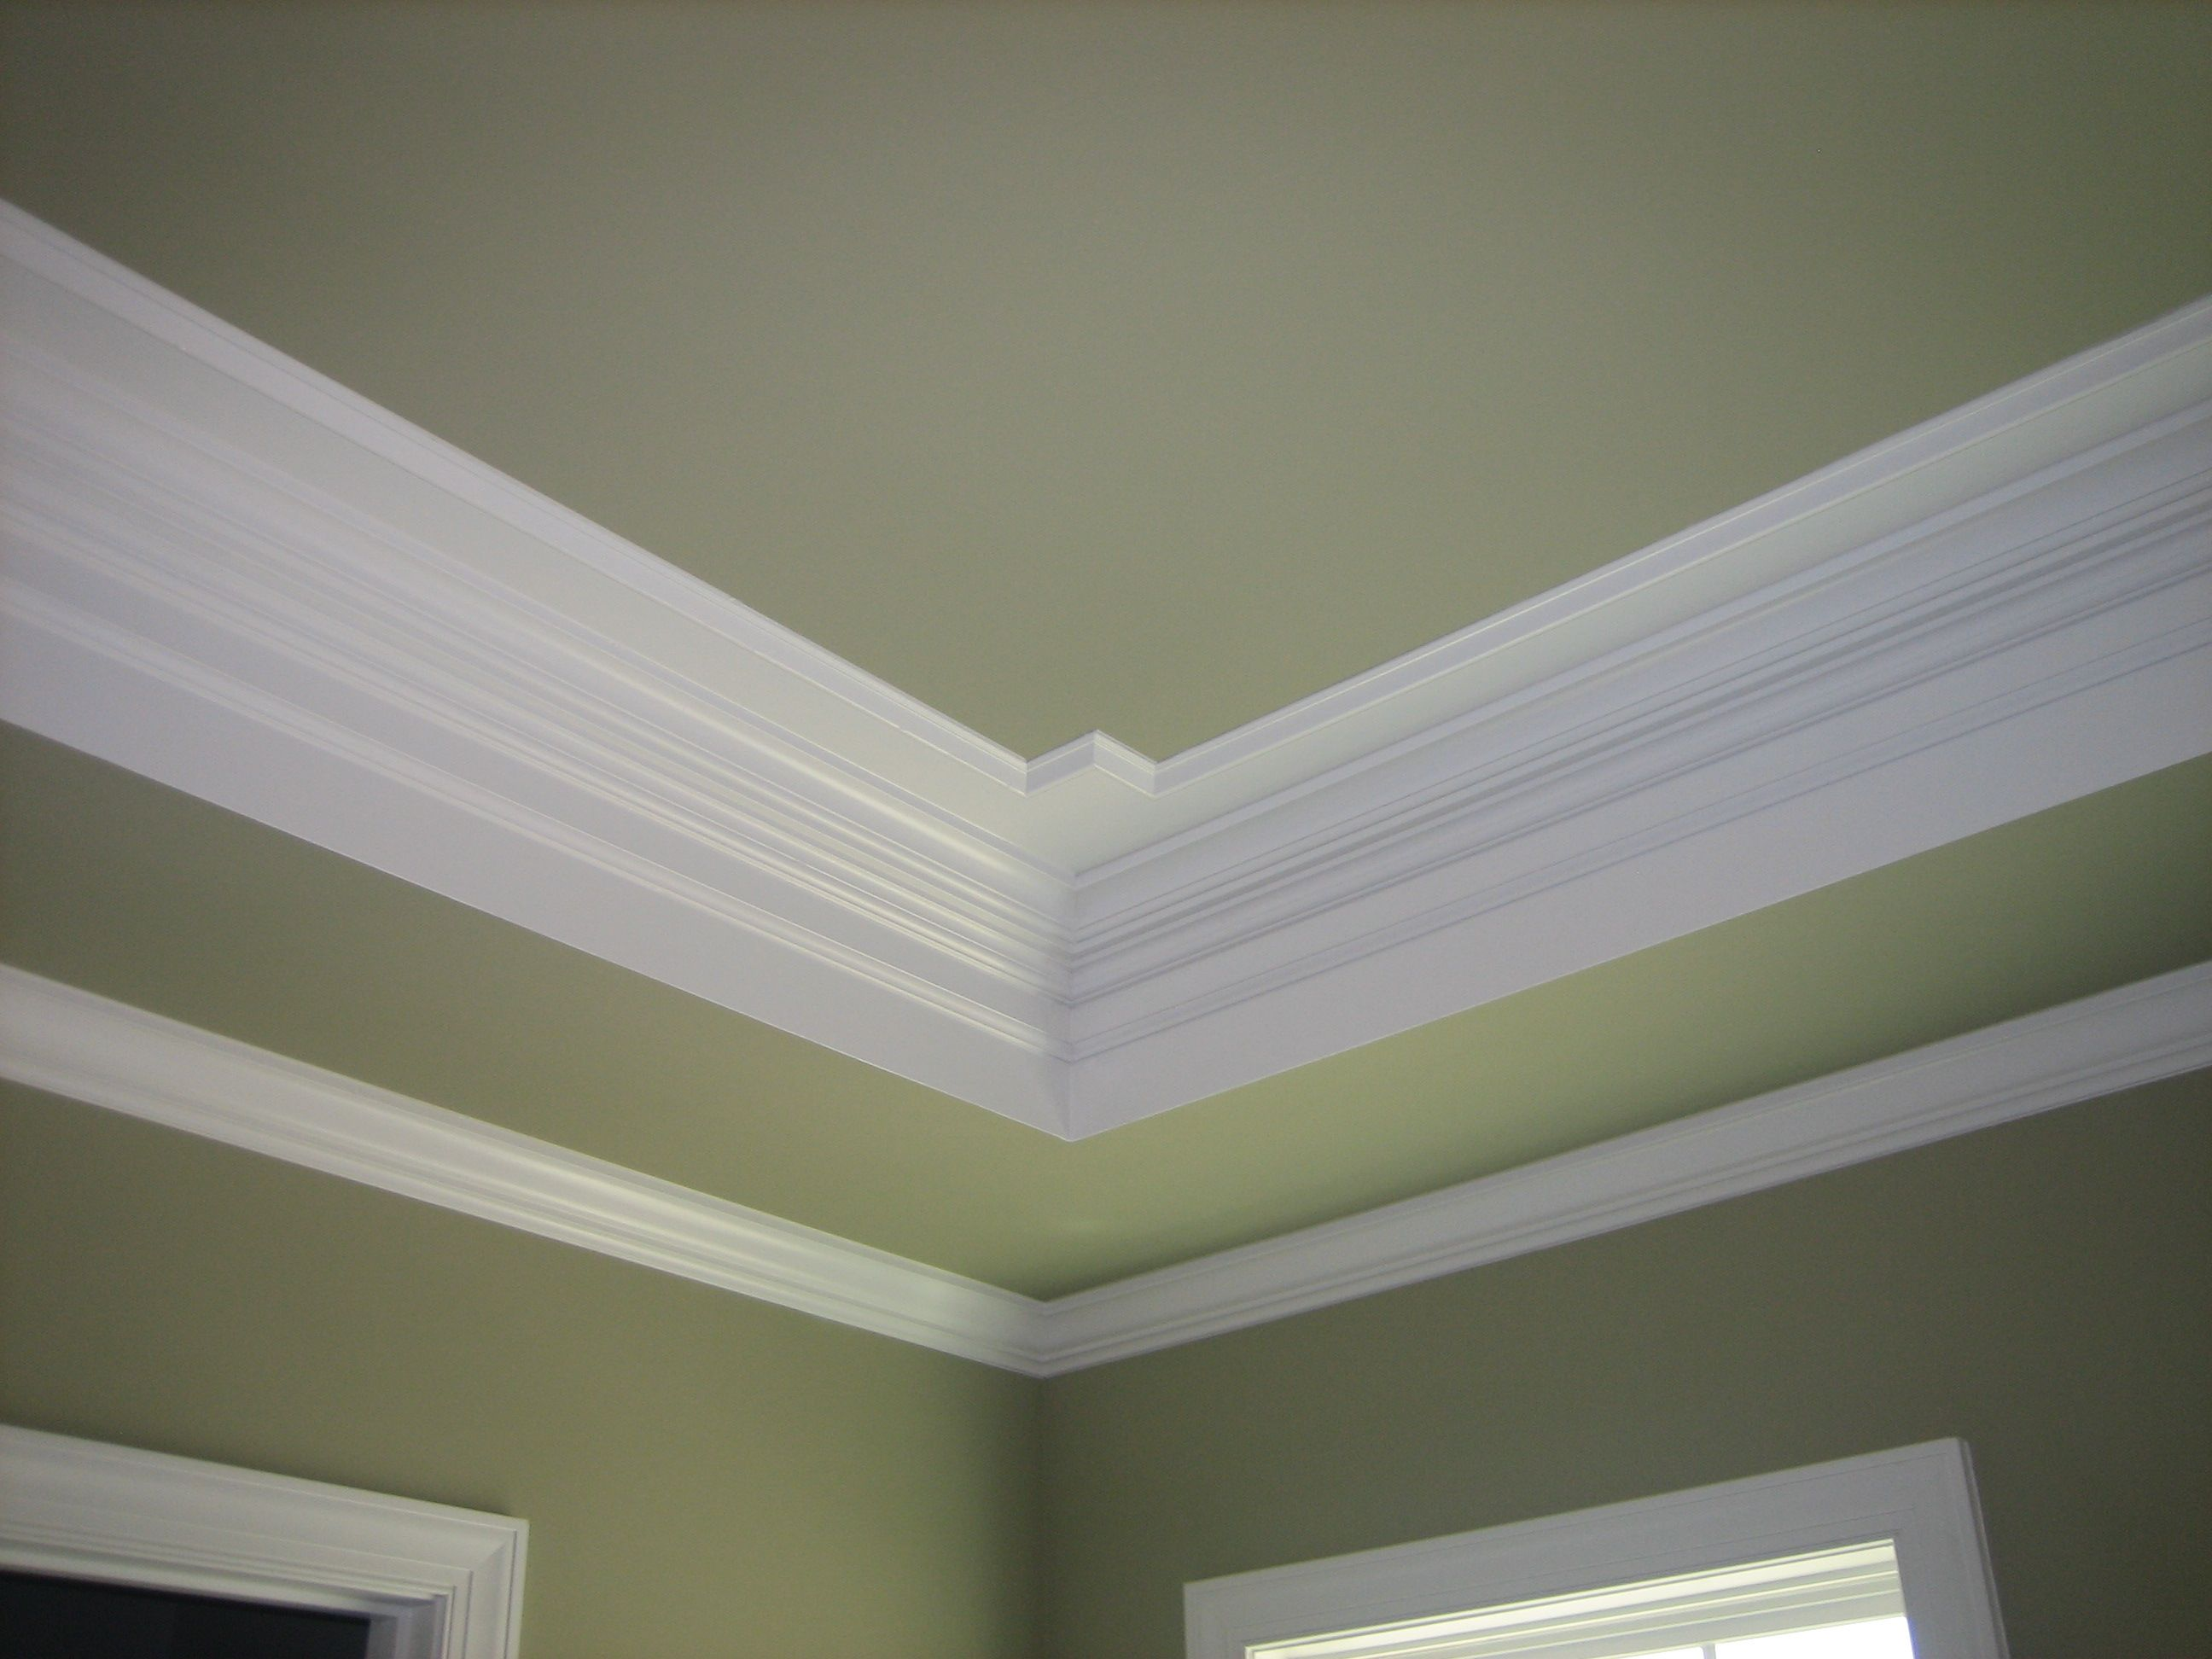 tray ceilings with crown molding